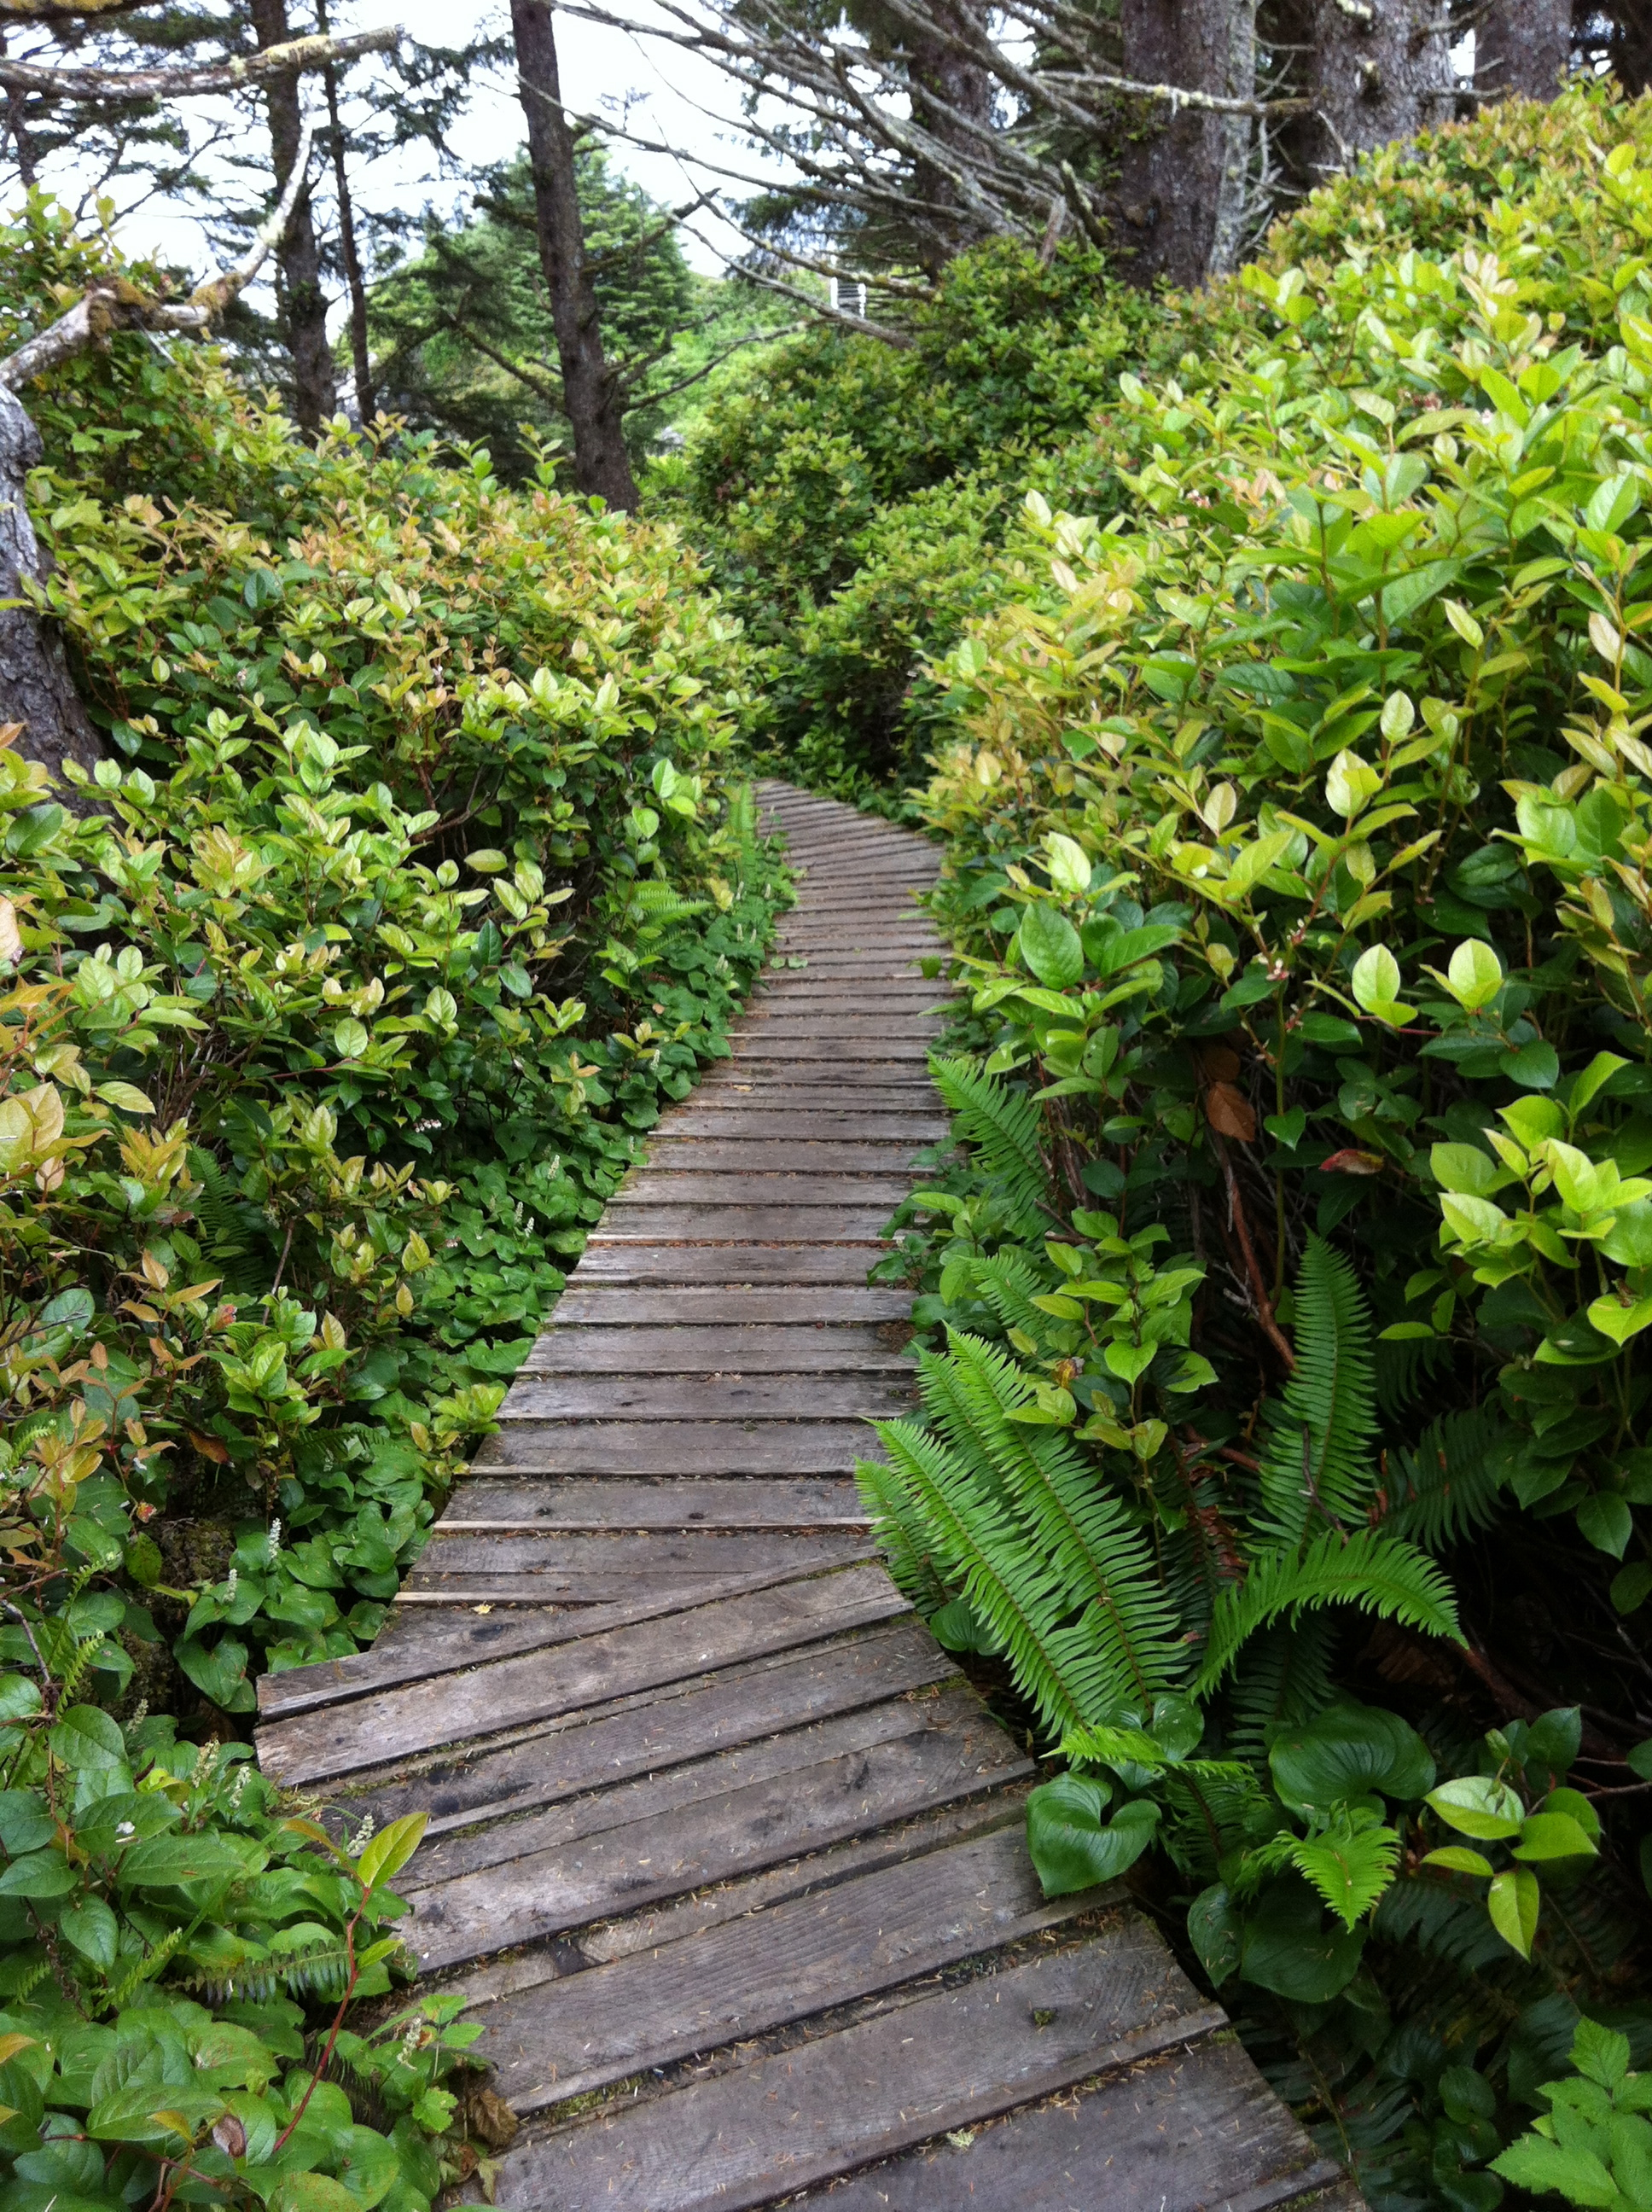 Walking beside salal and ferns near Pacific Sands Resort on Cox Bay.